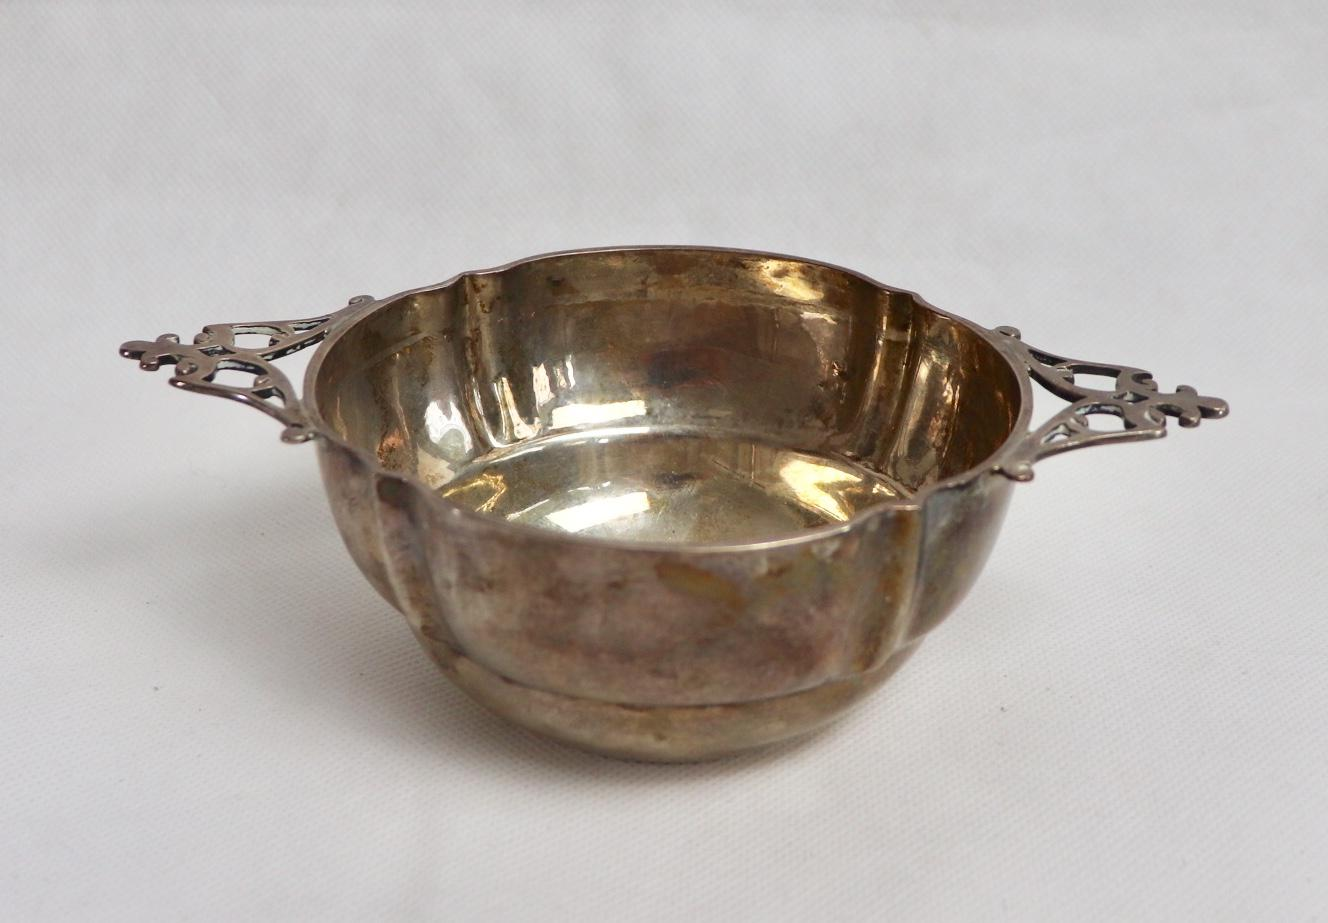 Silver Antiques Plus image (5 of 6)